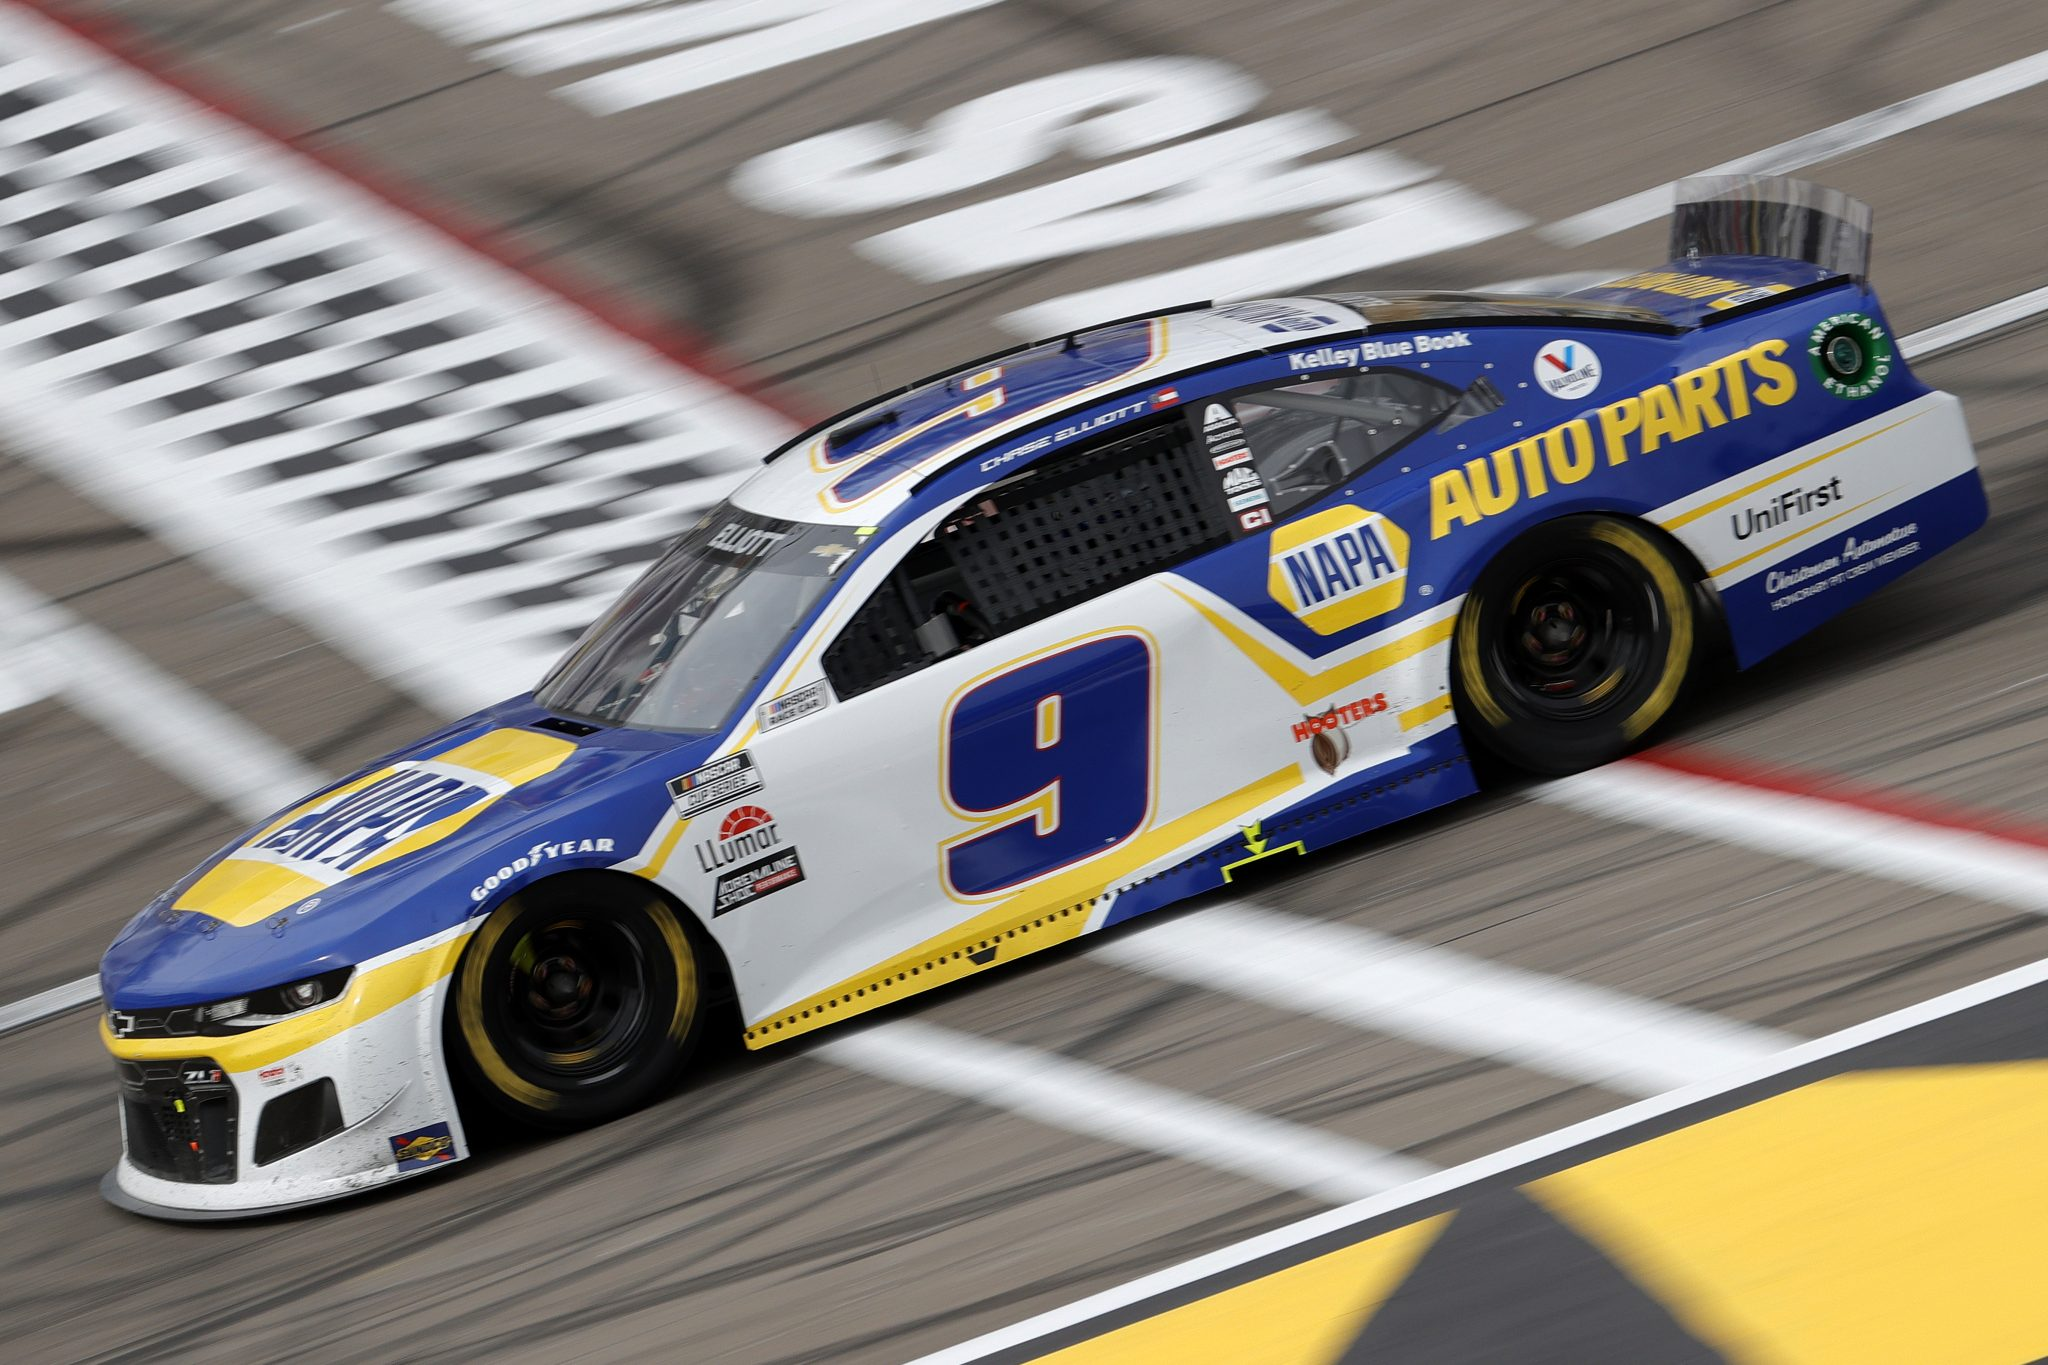 LAS VEGAS, NEVADA - MARCH 07: Chase Elliott, driver of the #9 NAPA Auto Parts Chevrolet, drives during the NASCAR Cup Series Pennzoil 400 presented by Jiffy Lube at the Las Vegas Motor Speedway on March 07, 2021 in Las Vegas, Nevada. (Photo by Chris Graythen/Getty Images) | Getty Images